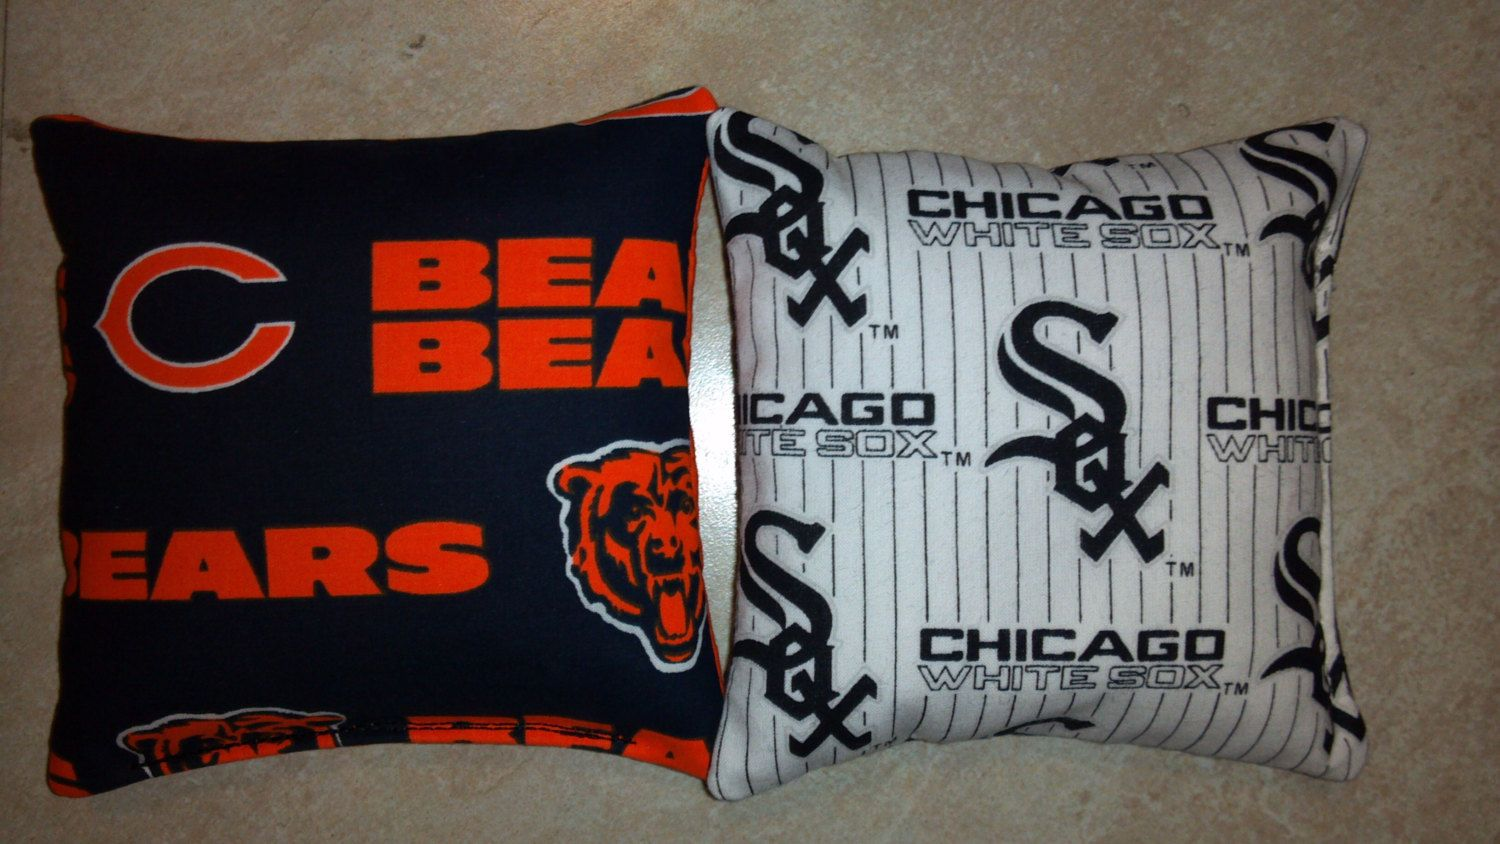 Chicago Bears and Chicago White Sox bean bags cornhole bags baggo regulation size and weight - set of 8